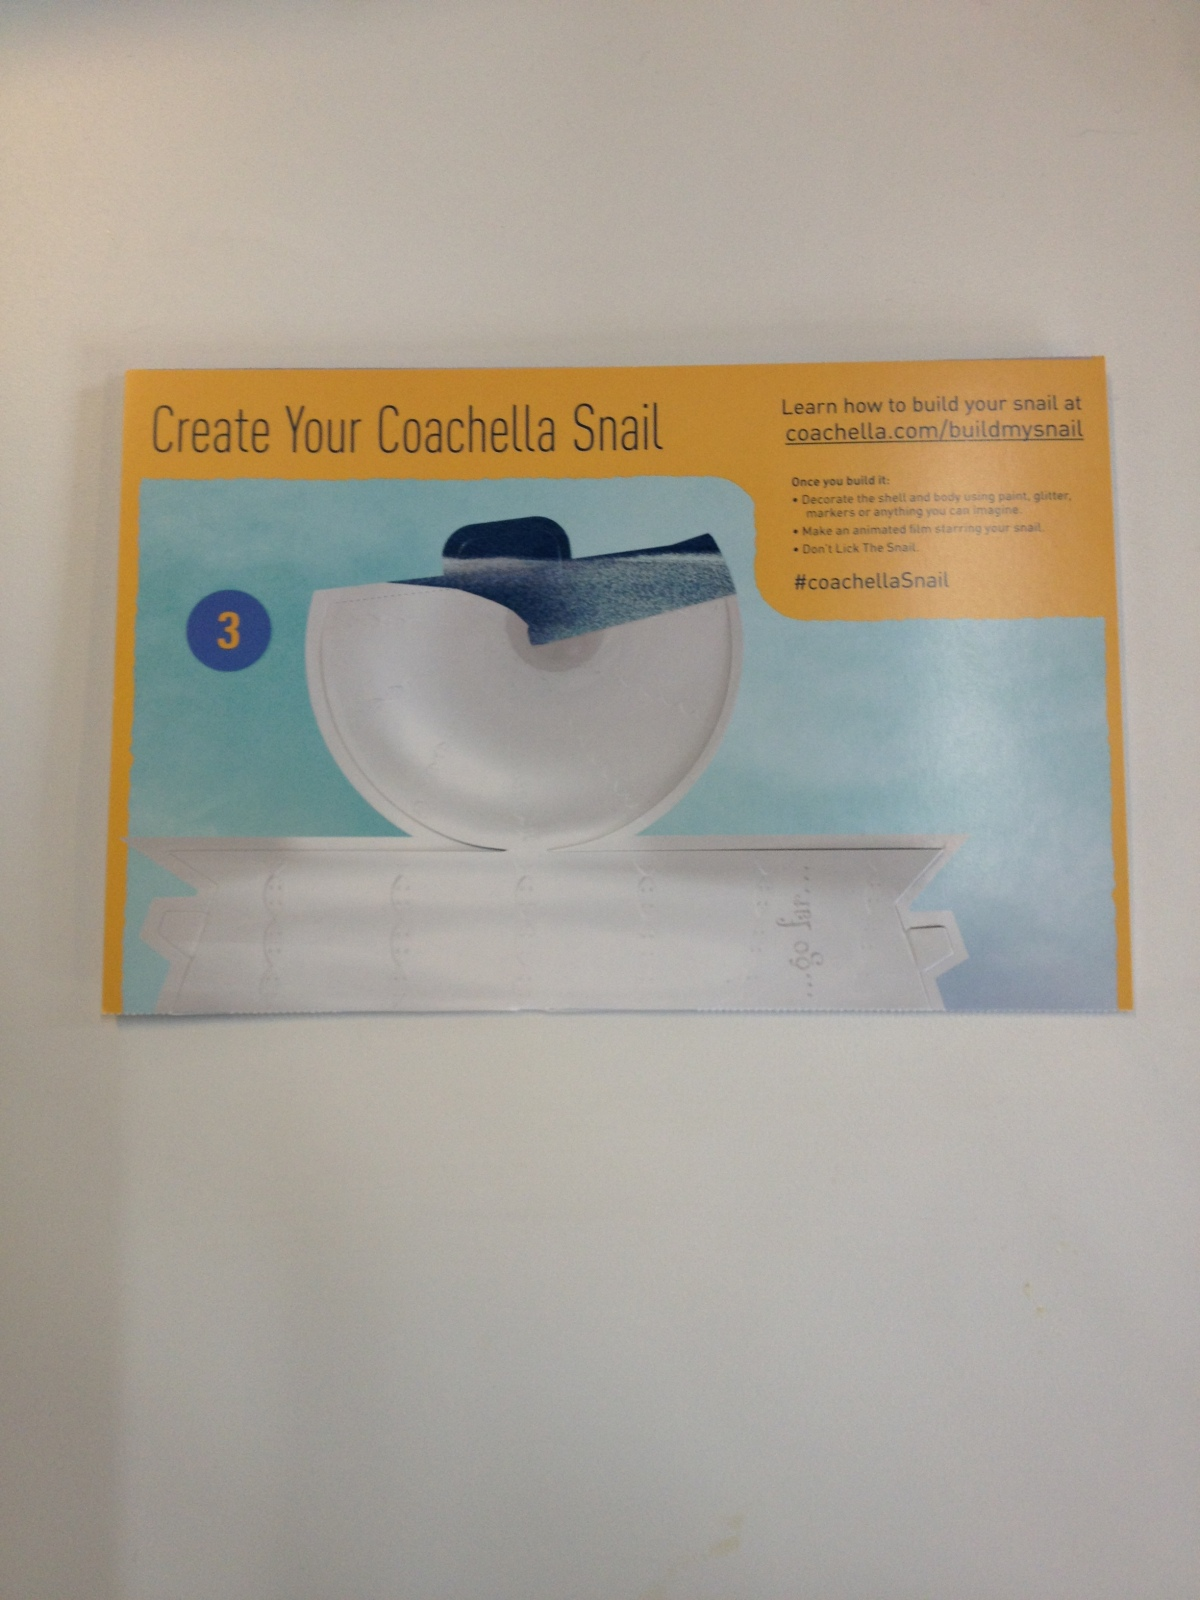 coachella 2014 pass, coachella snail making kit